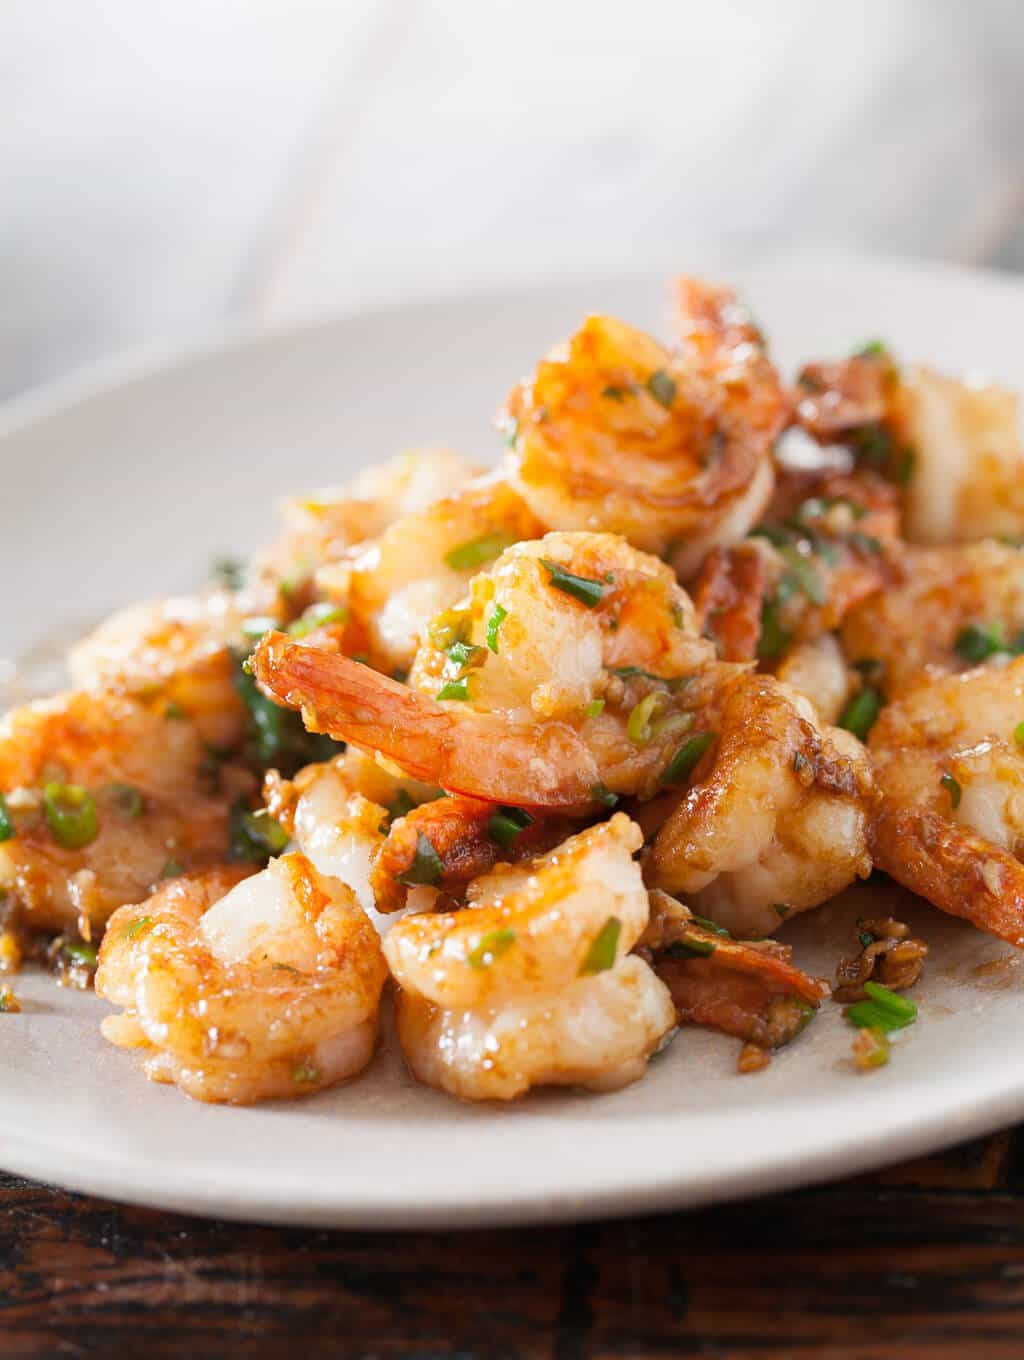 Chinese Stir Fry Recipes  Chinese Shrimp Stir Fry Recipe Ready in 15 minutes